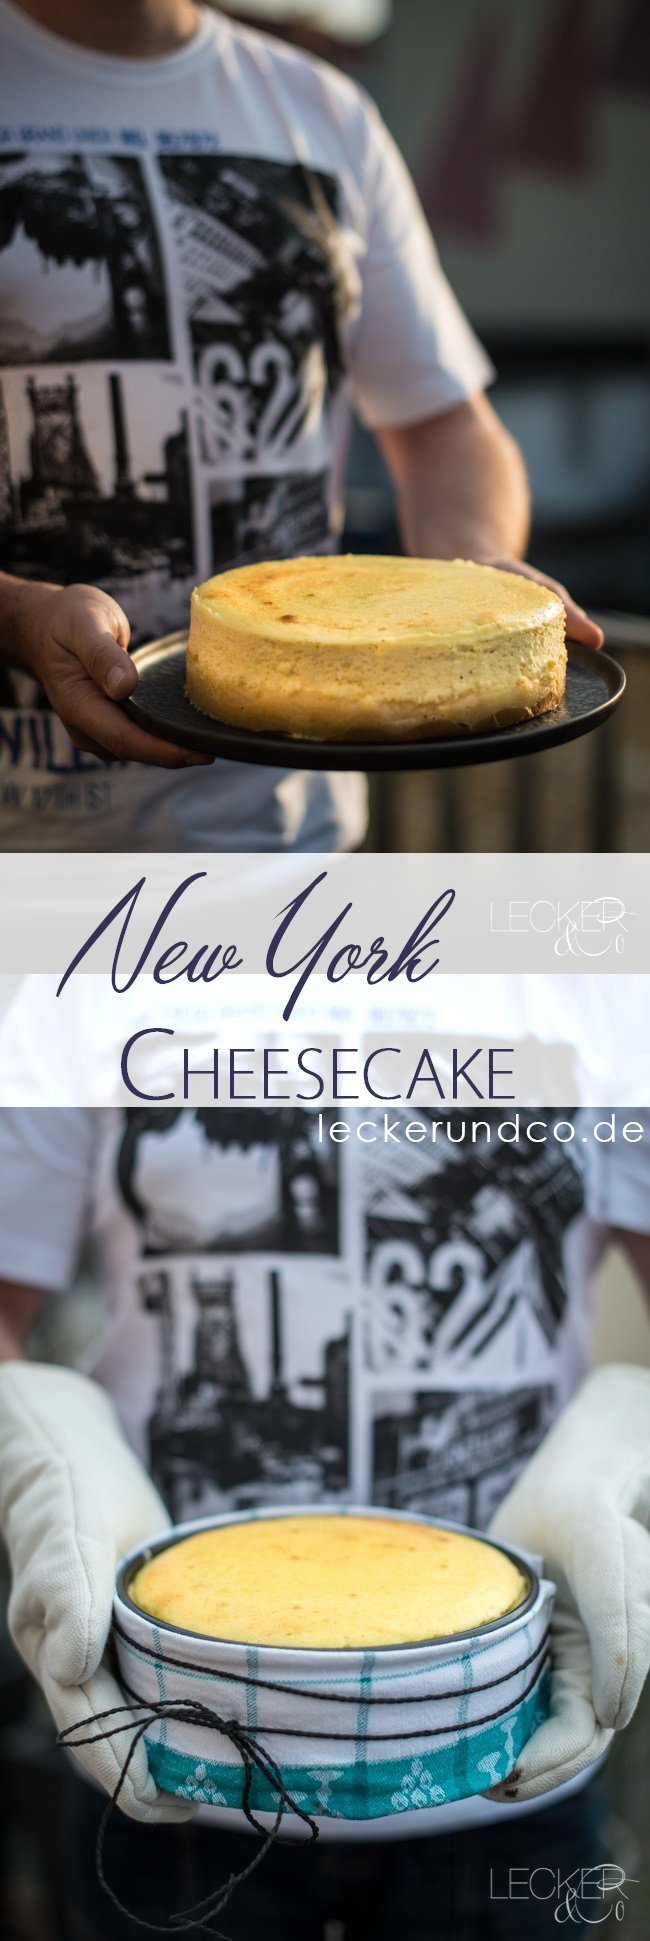 New York Cheesecake | LECKER & Co | Food blog from Nuremberg